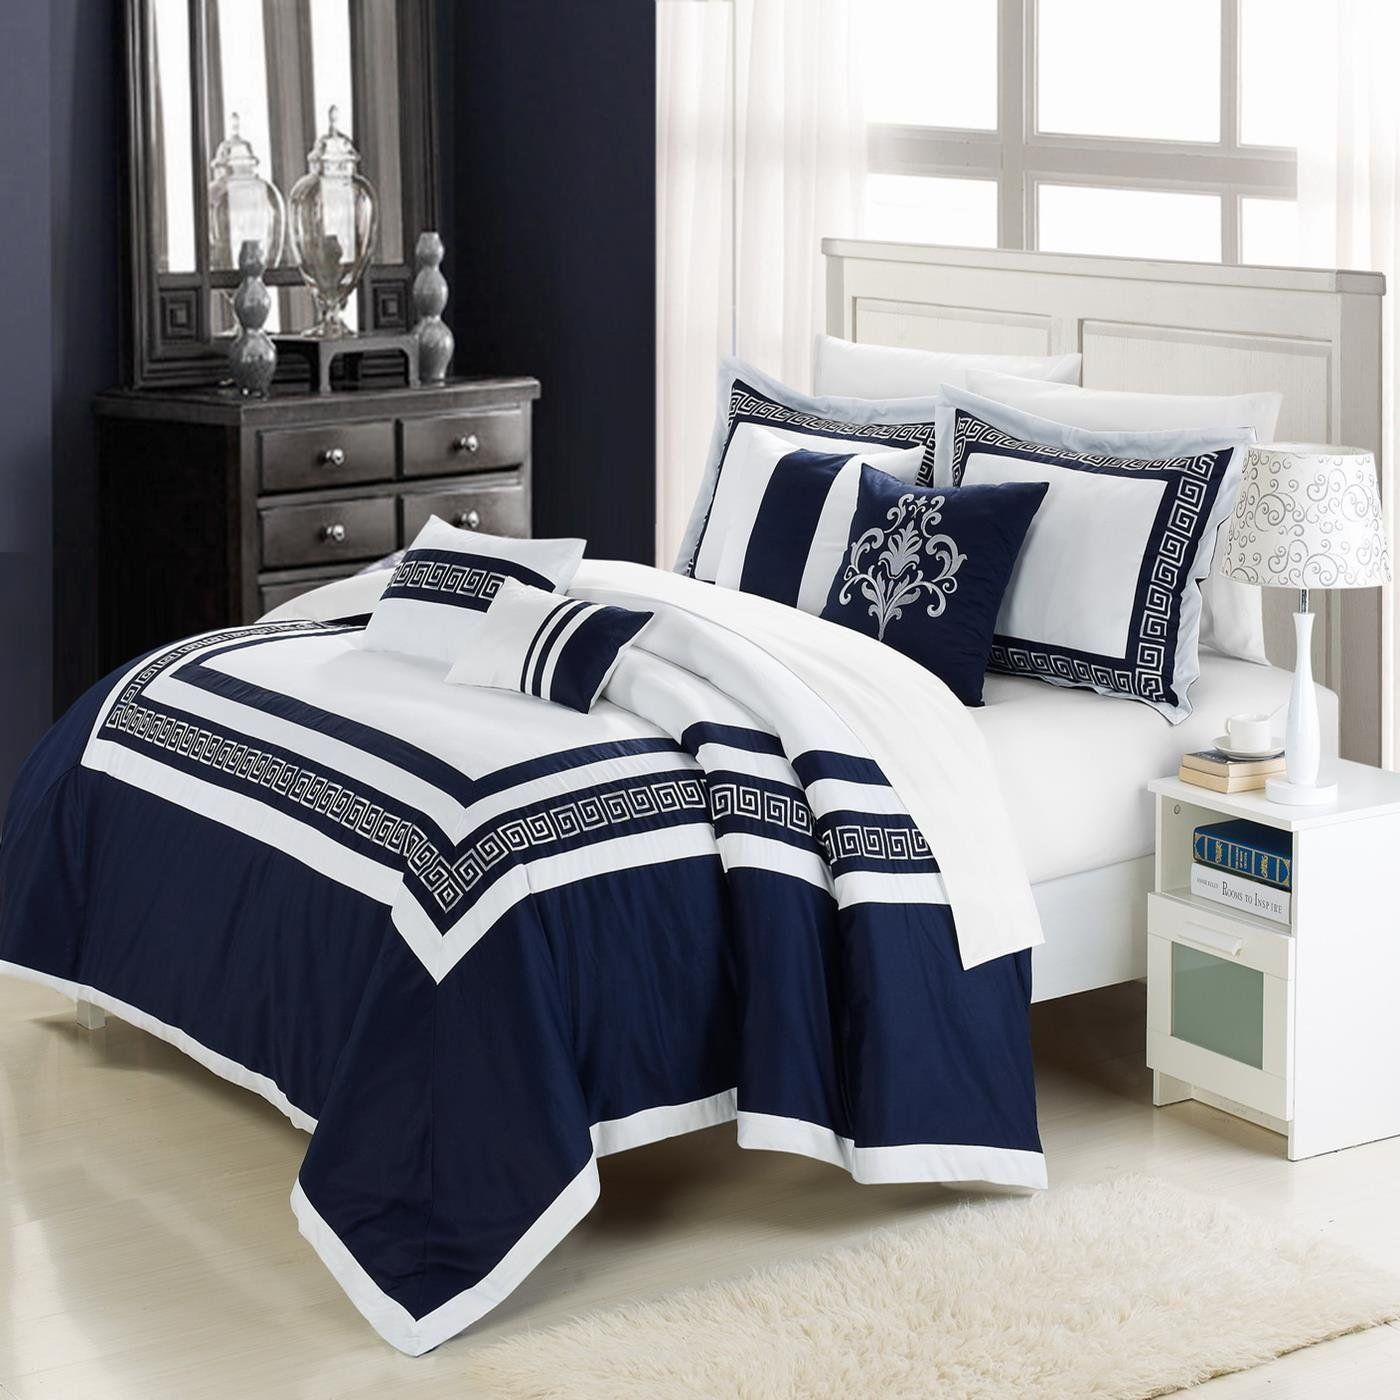 Blue and white bedding - White Bedding With Blue Accent White And Navy Blue Embroidered Comforter Set